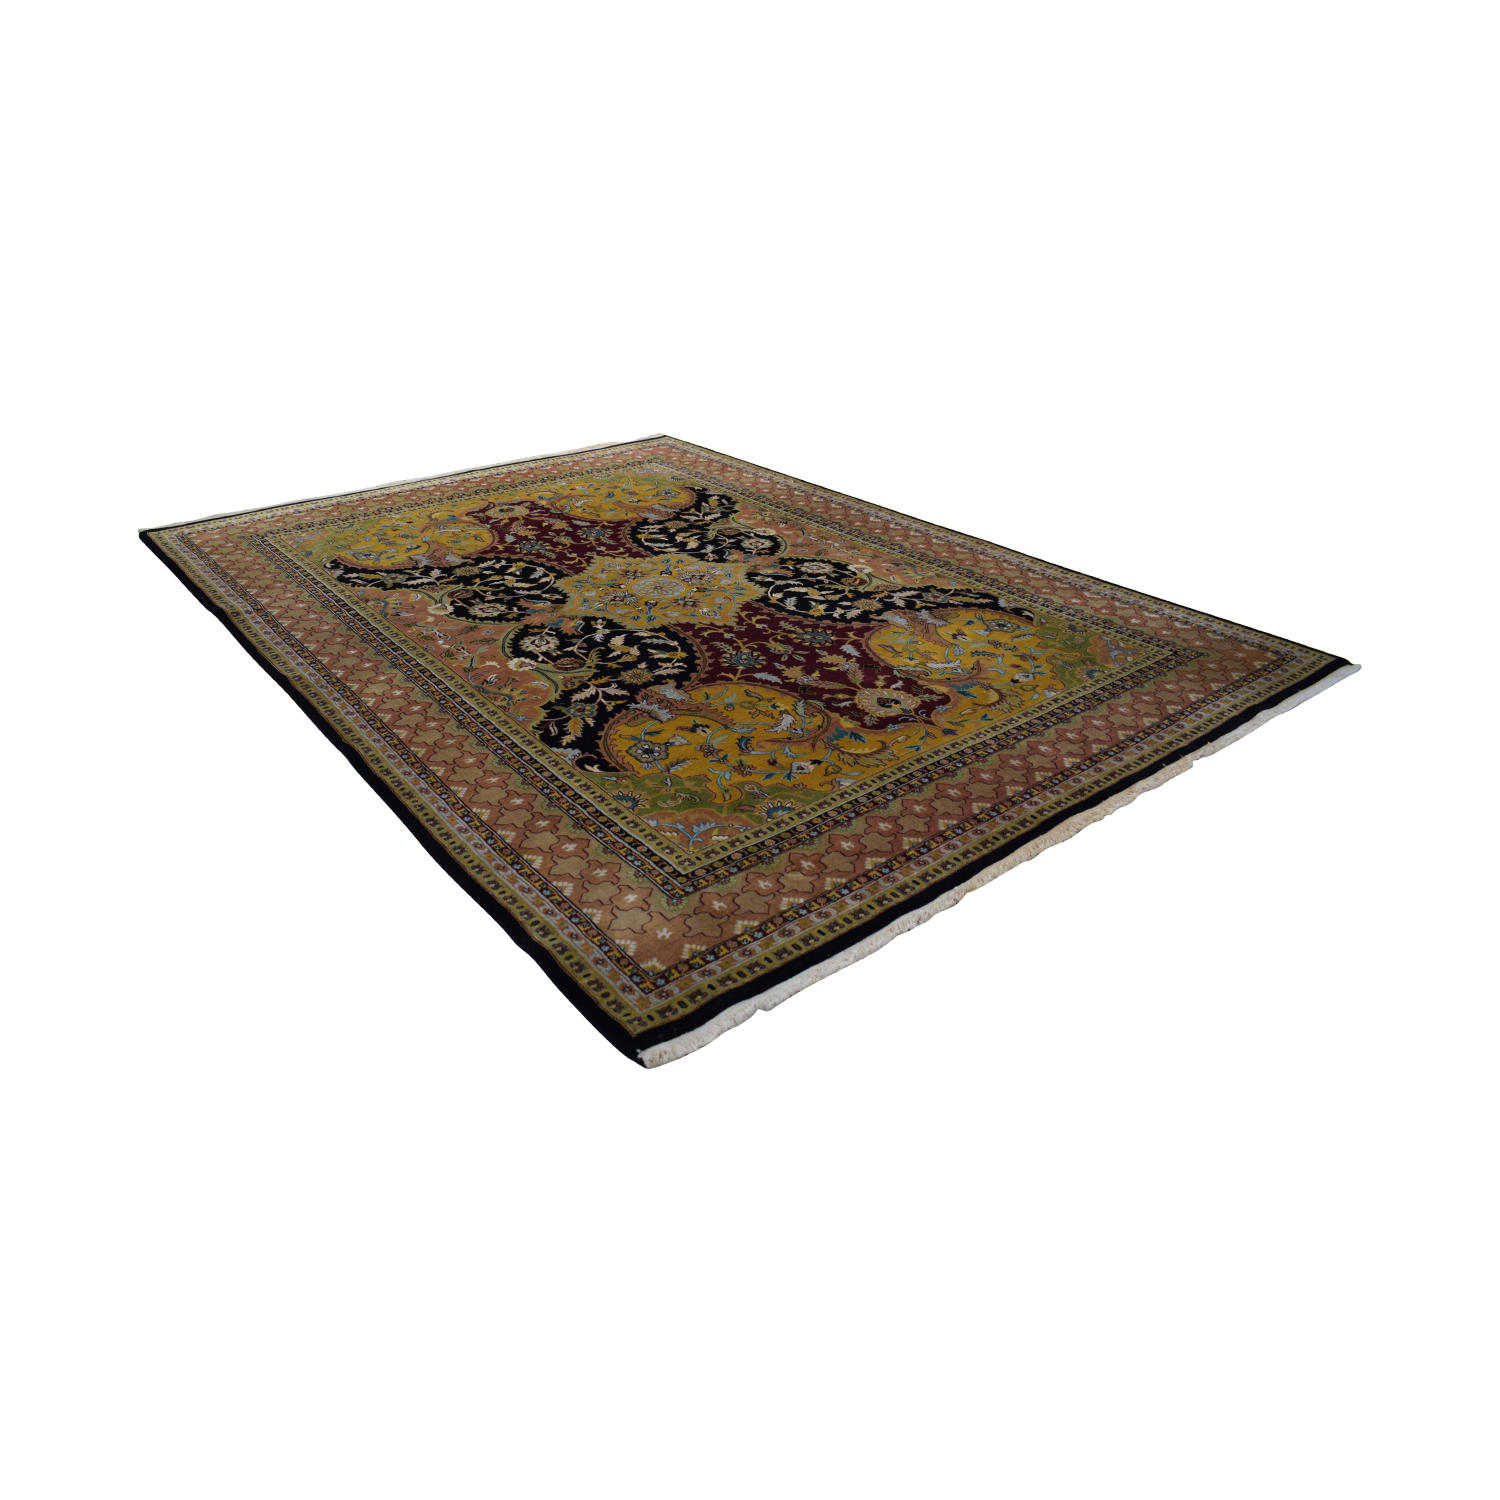 ABC Carpet & Home ABC Carpet & Home 9x12 Persian Rug for sale